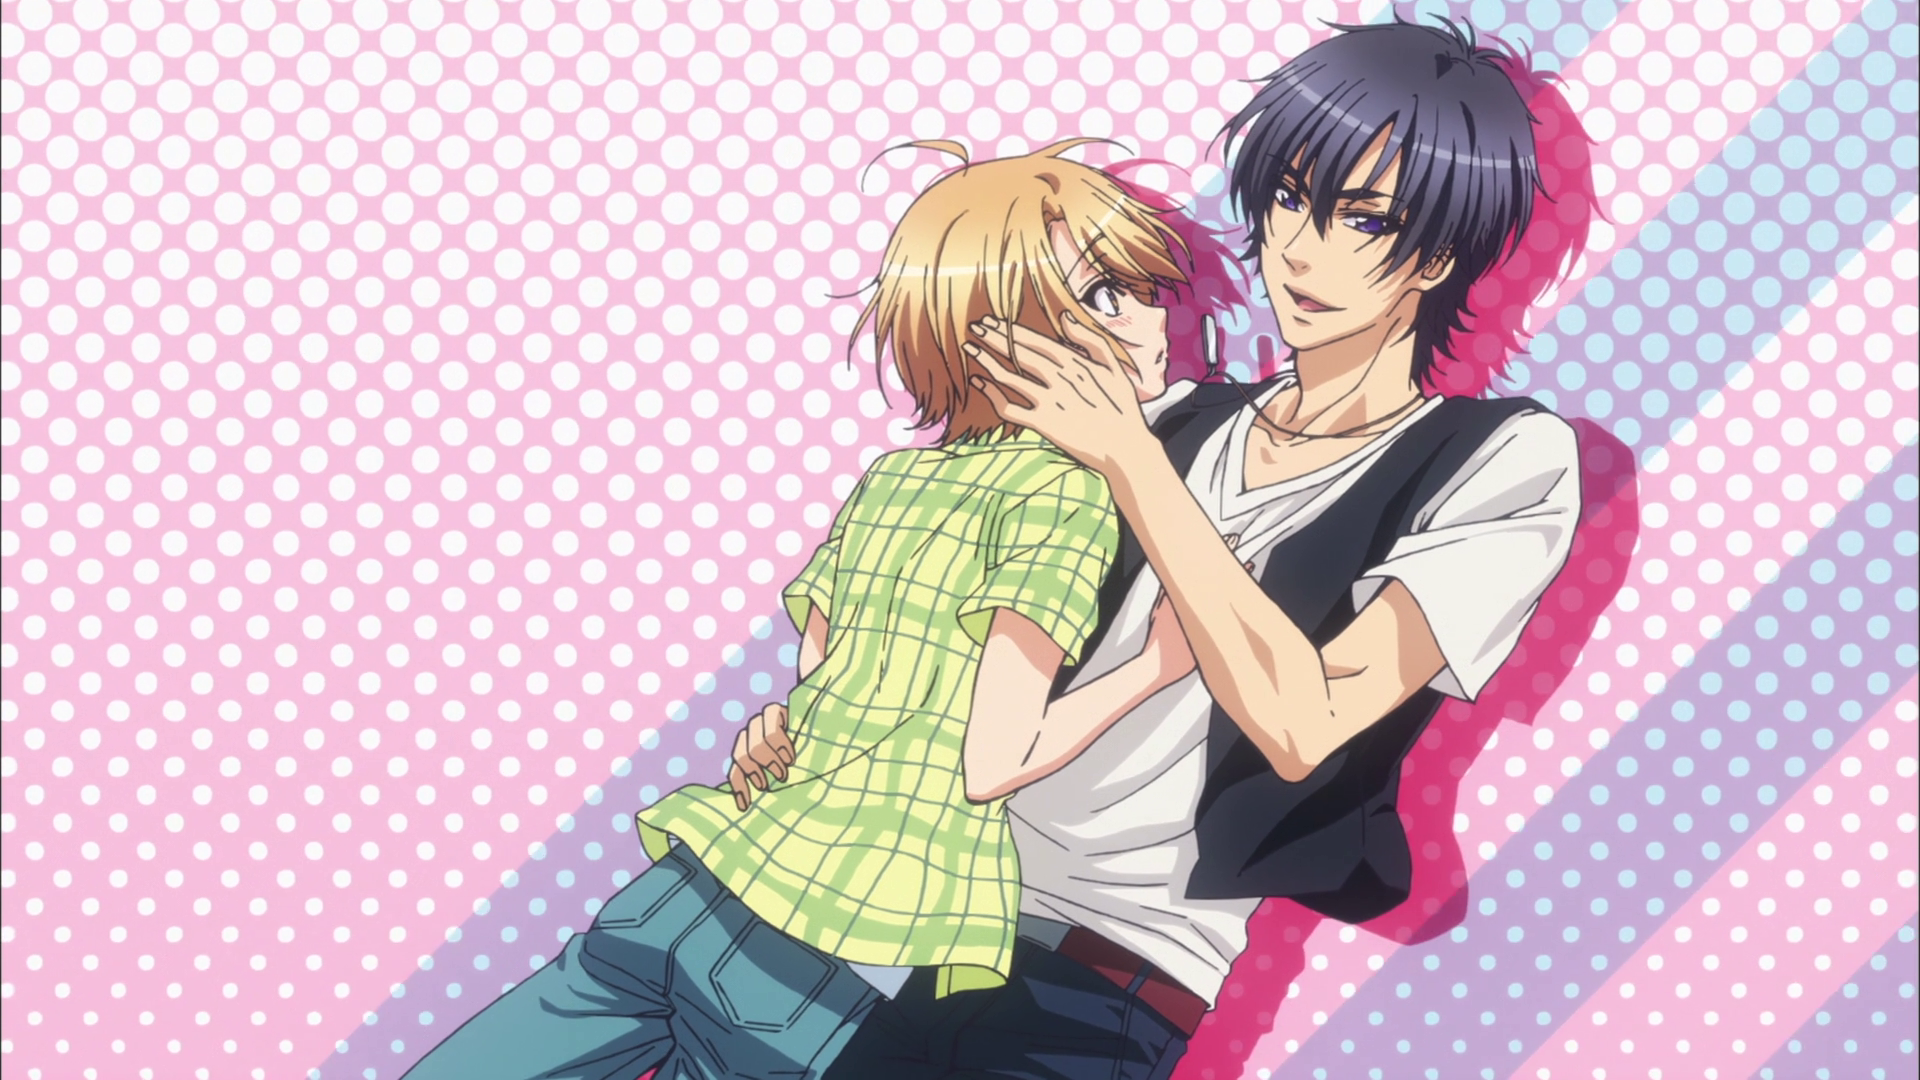 Love Stage Iphone Wallpaper : Love Stage Wallpaper www.pixshark.com - Images Galleries ...